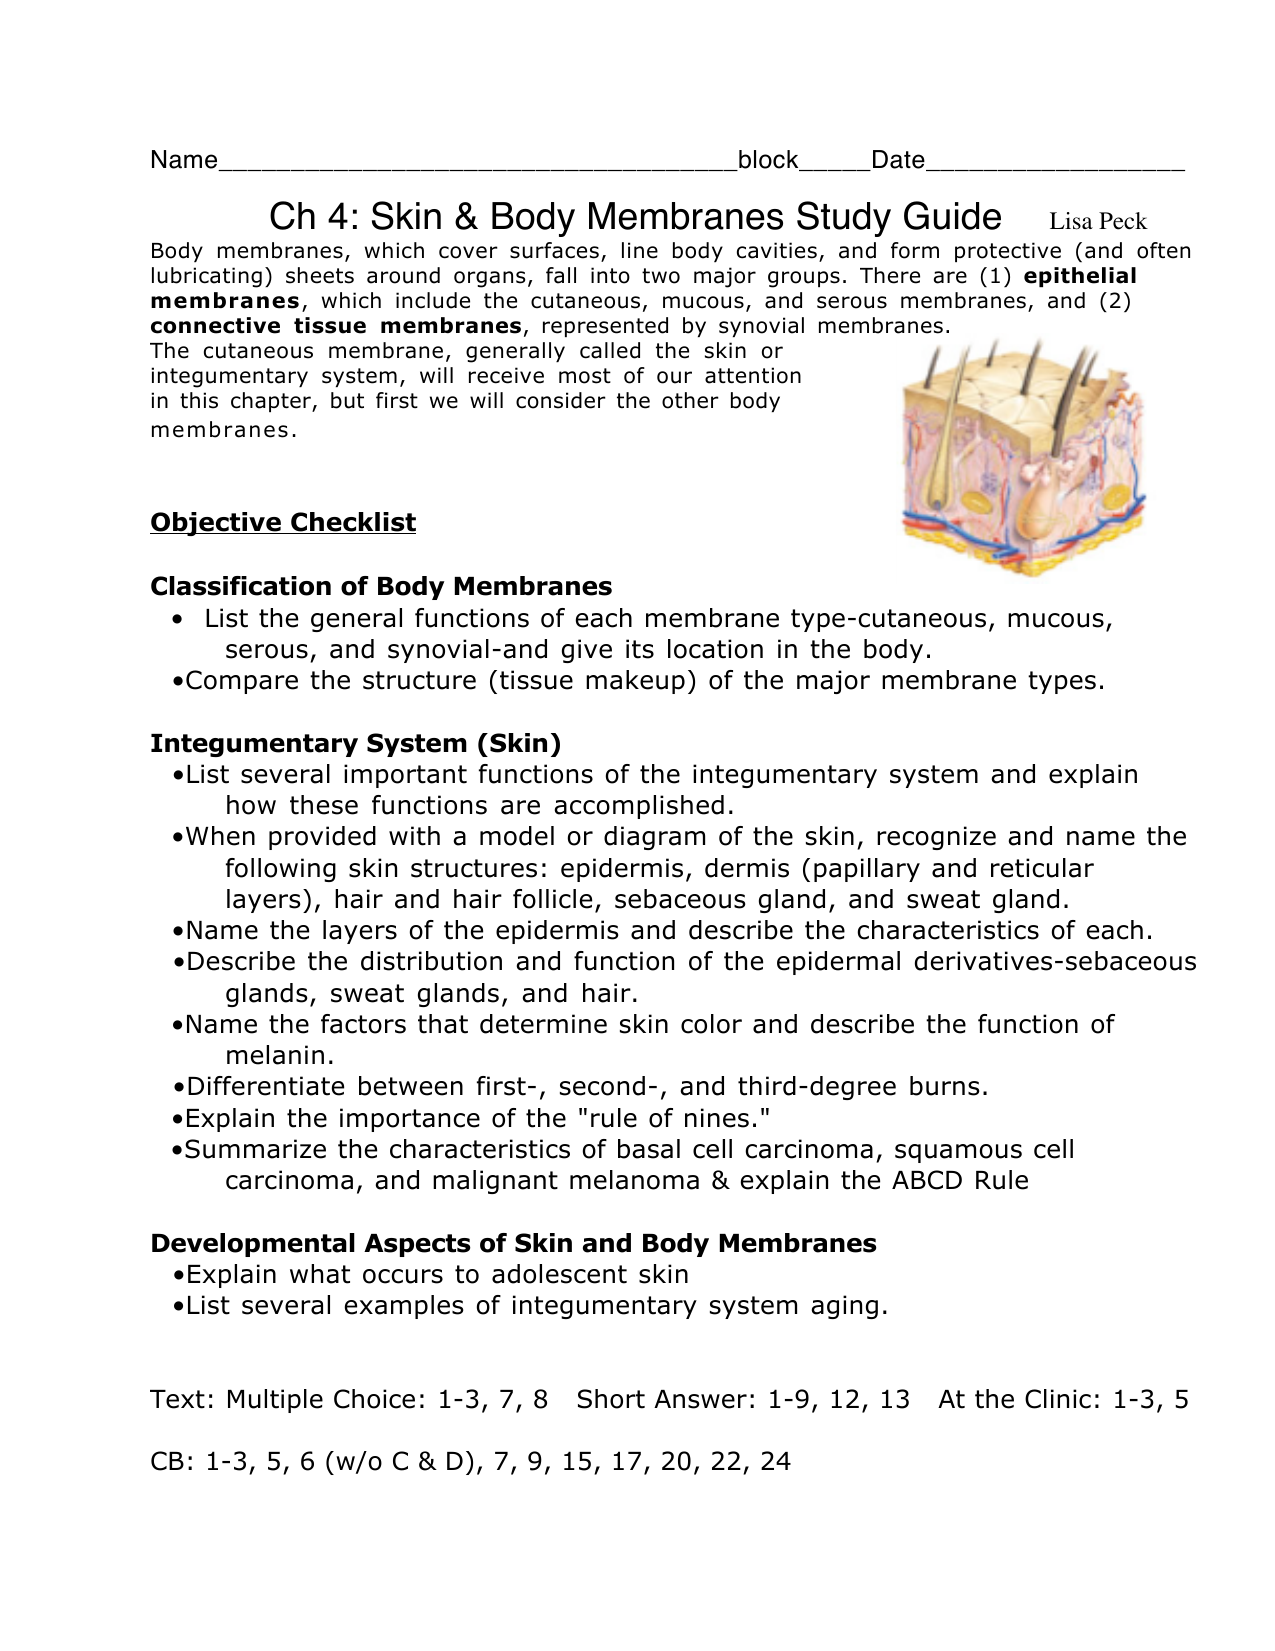 Ch 4 Skin Body Membranes Study Guide Lisa Peck